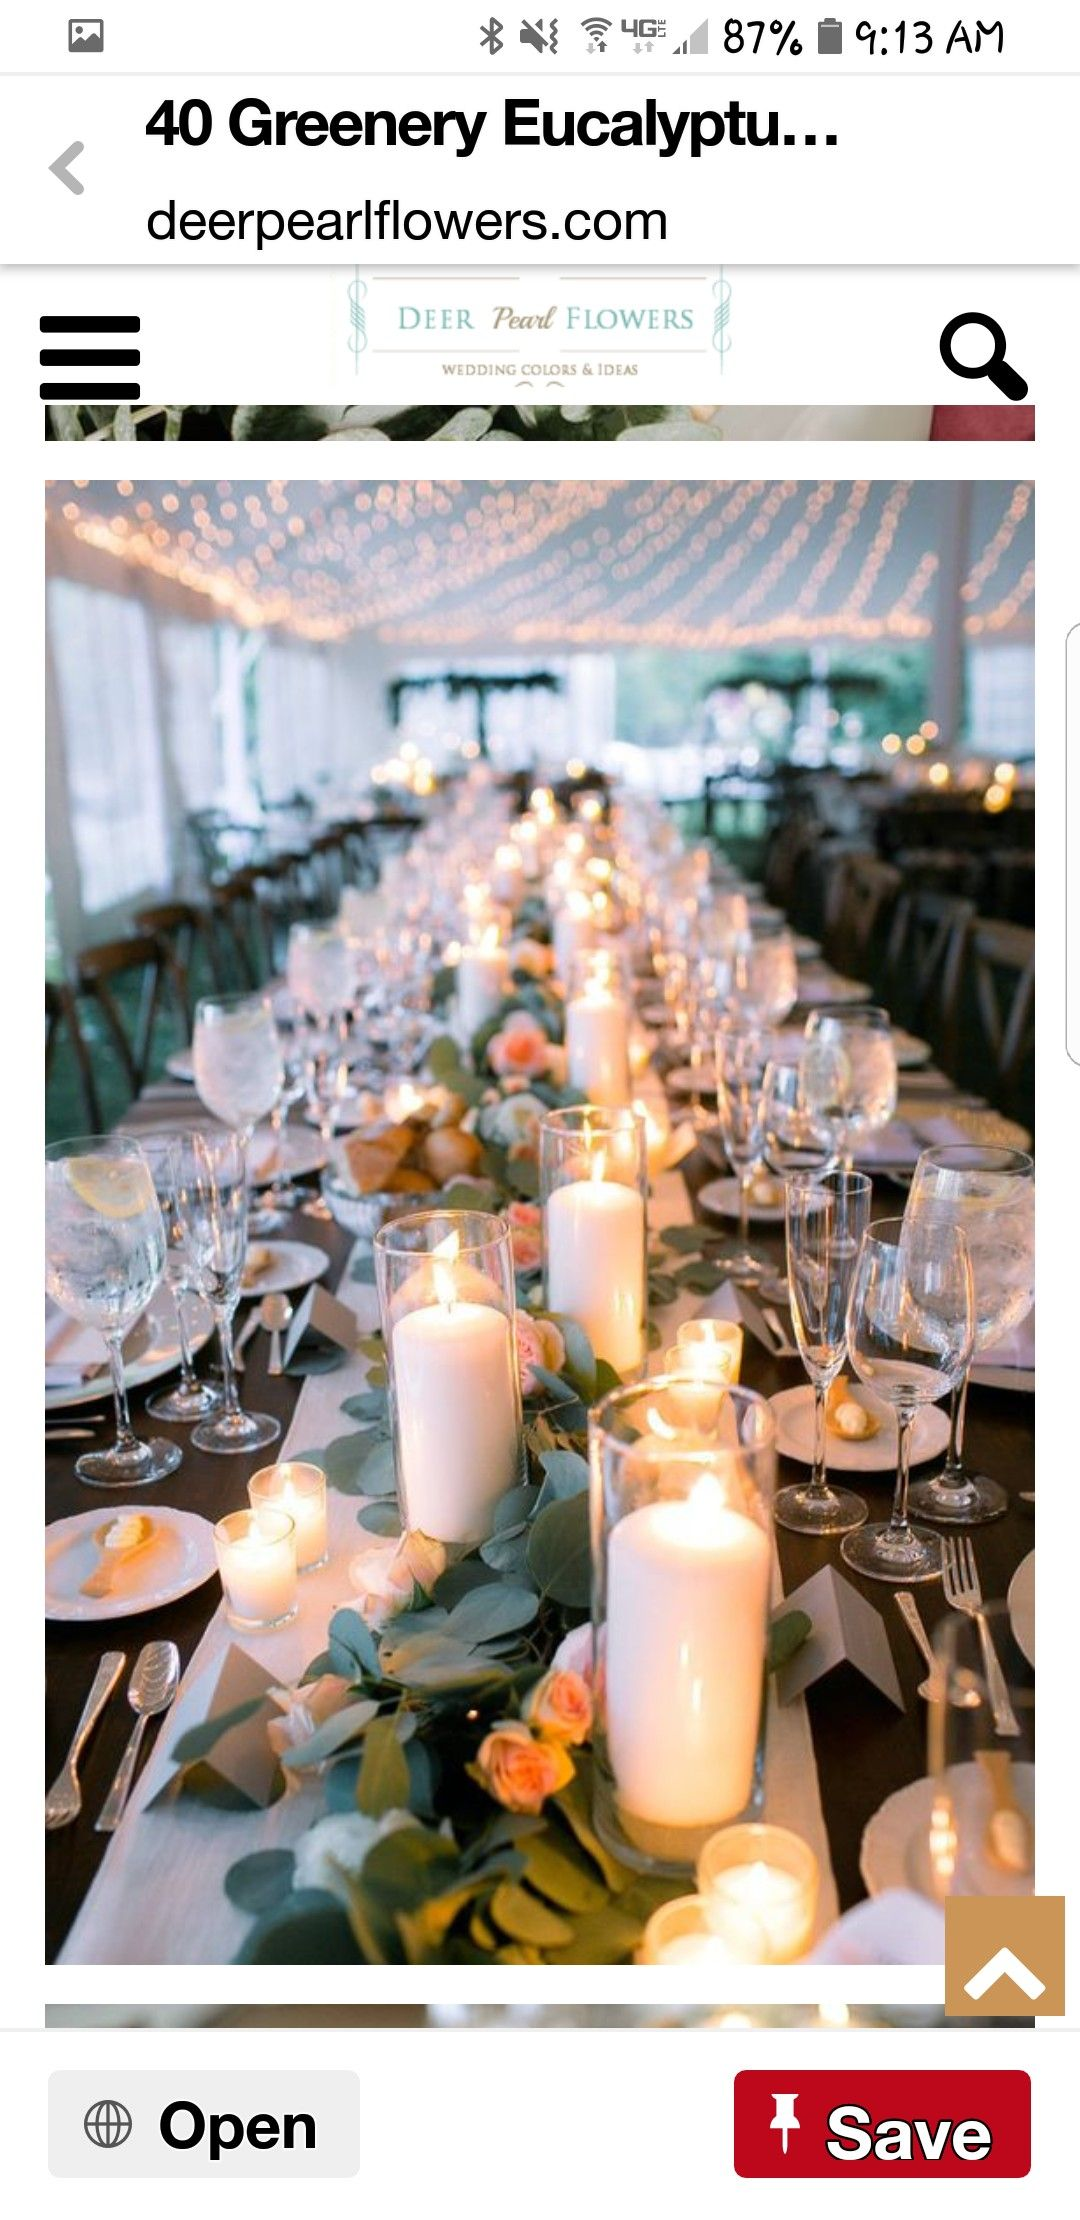 Wedding decorations table october 2018 Pin by Sarah Symington on Wedding ideas in   Pinterest